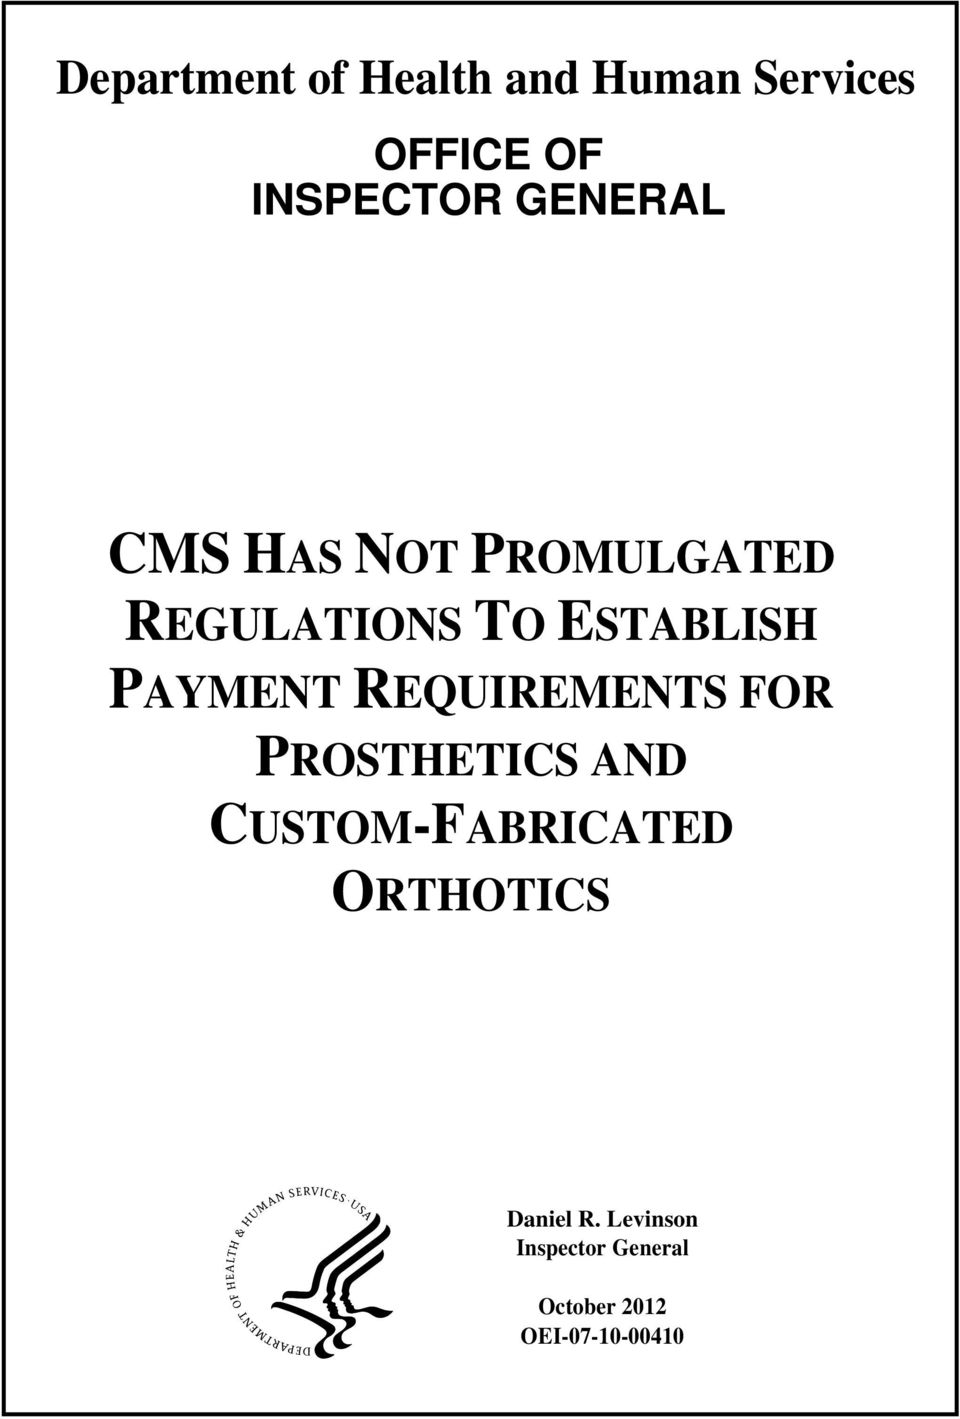 PAYMENT REQUIREMENTS FOR PROSTHETICS AND CUSTOM-FABRICATED